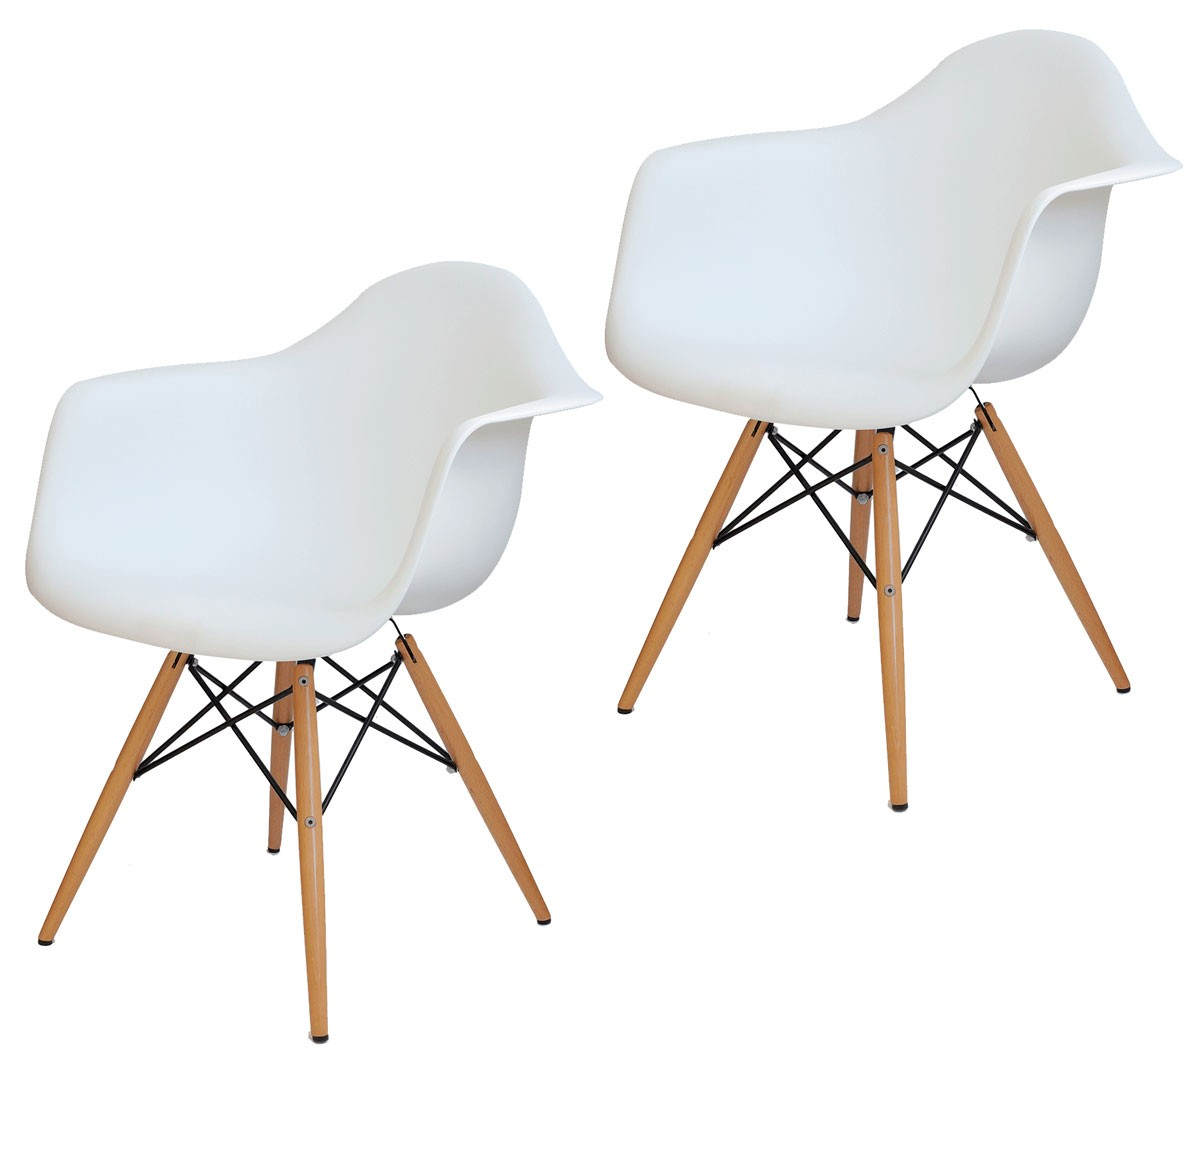 Kit 2x Cadeira Eames Daw PP Branca wood - Black Friday